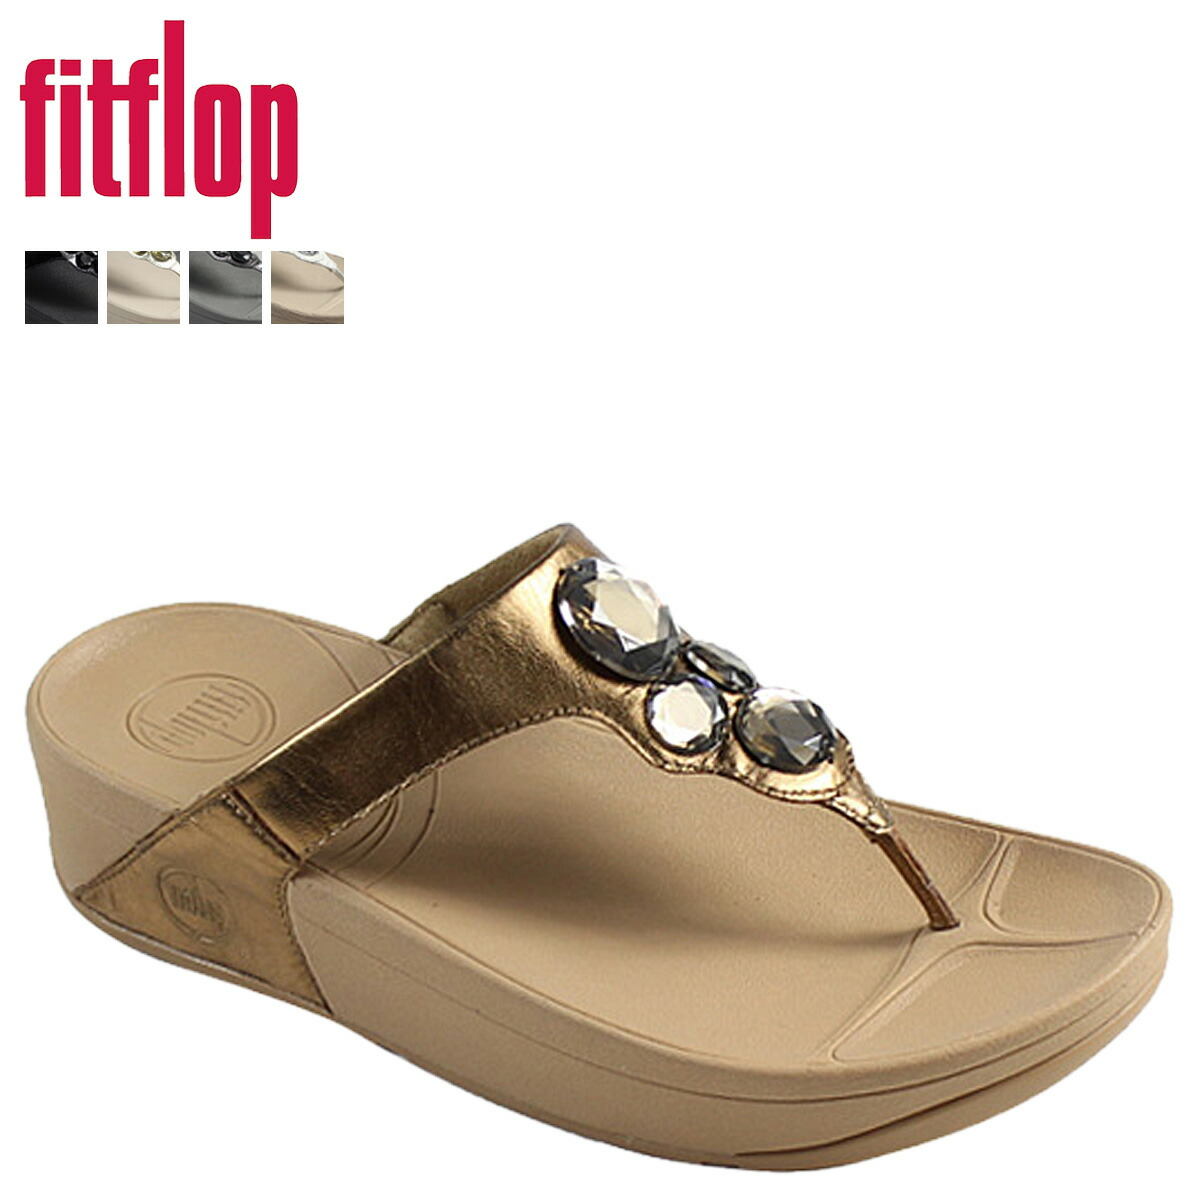 535de7b76 Fitflop Price List Philippines - Avanti House School